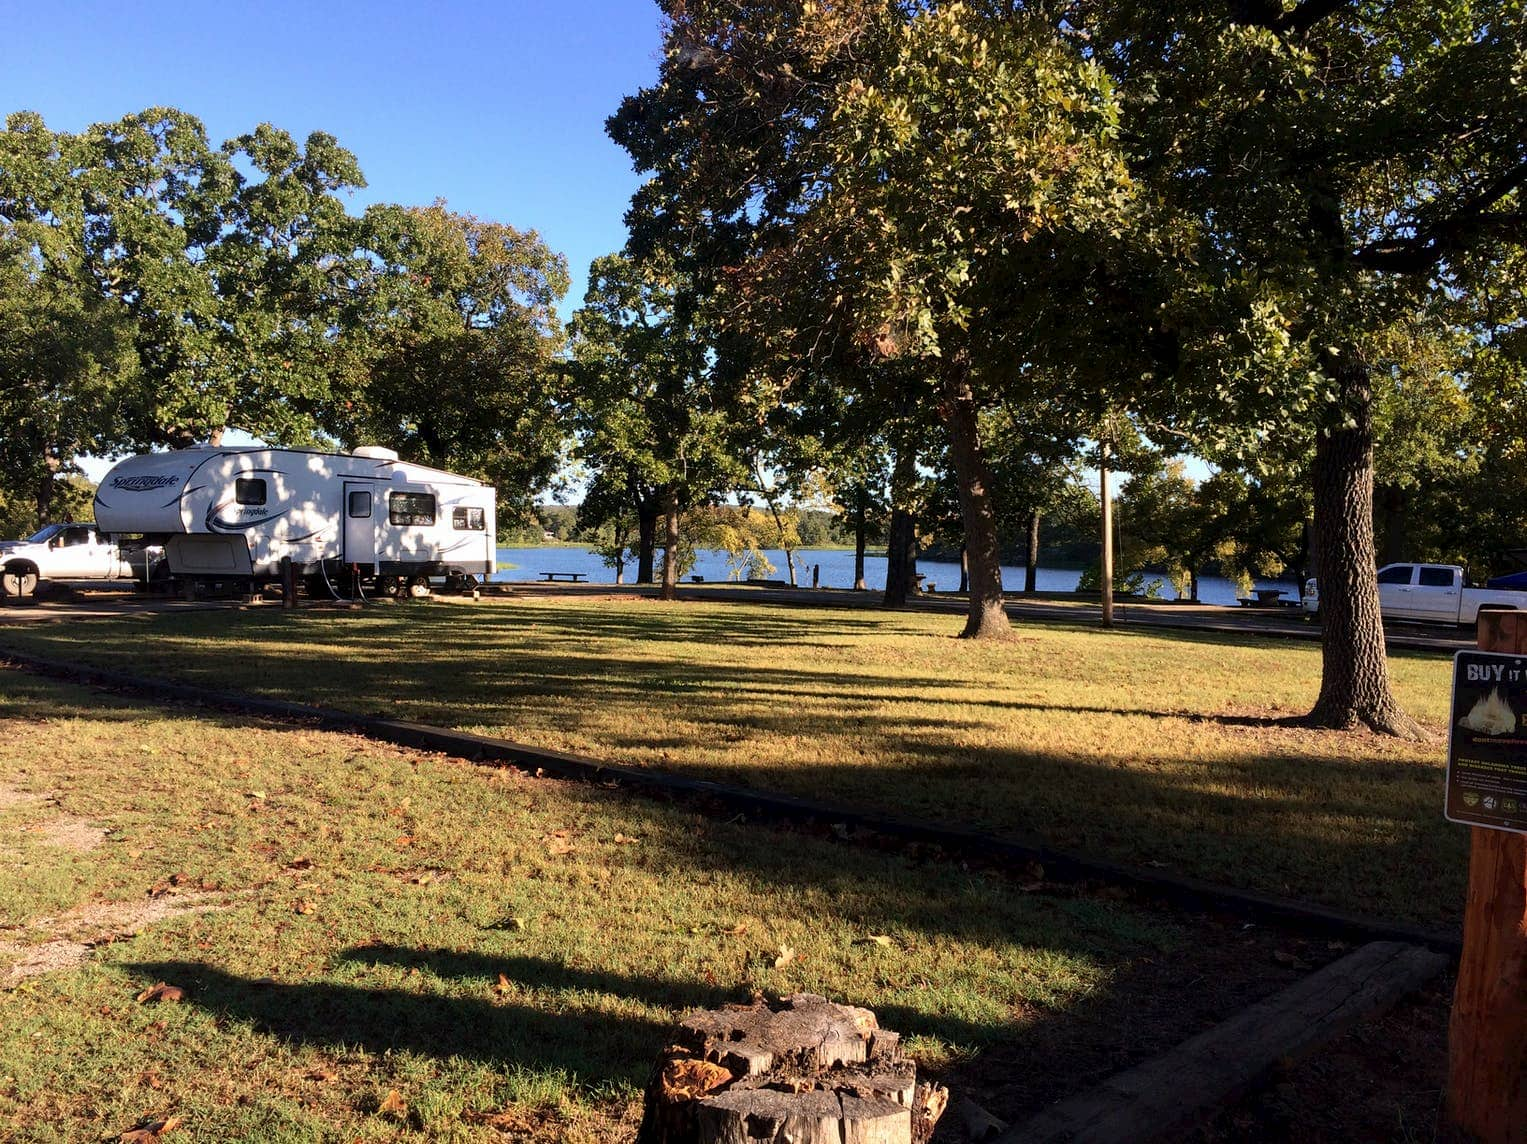 RV parked in shaded area below a tree beside a lake.